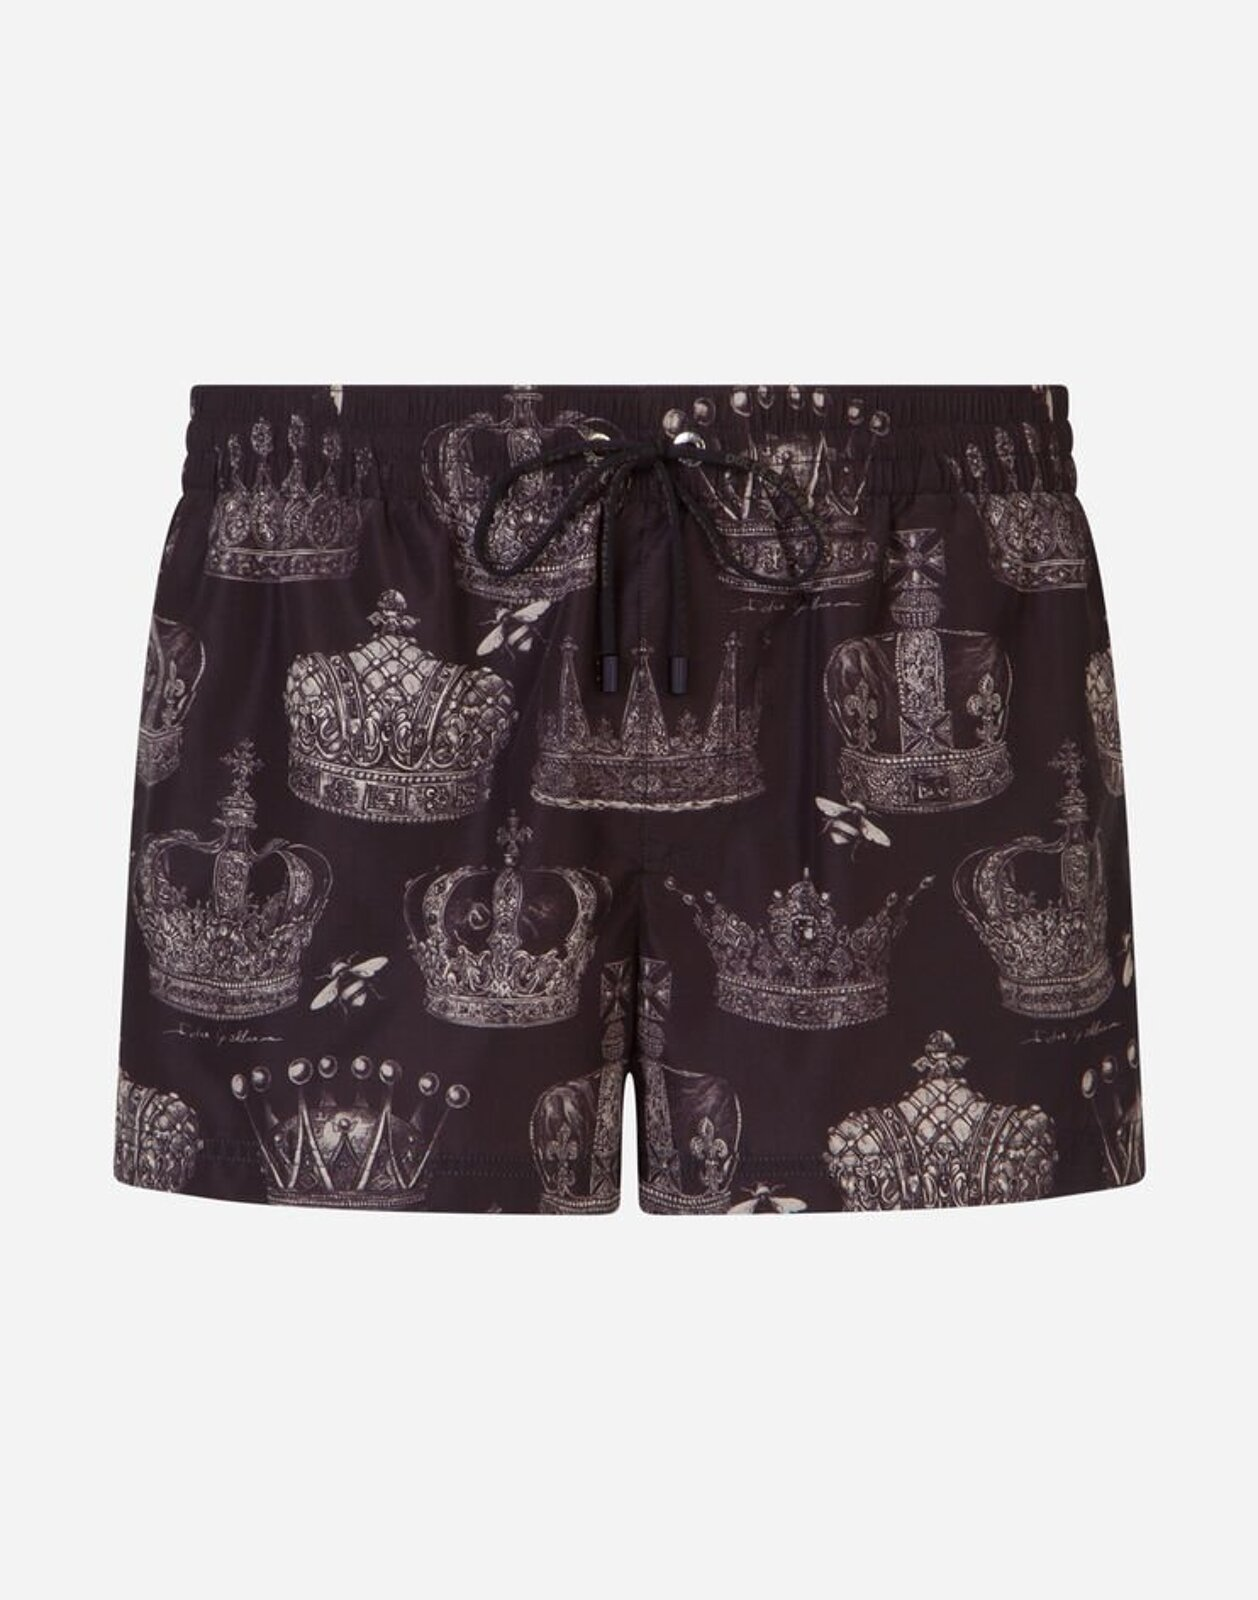 Short Swim Trunks With Crowns Print - Dolce & Gabbana